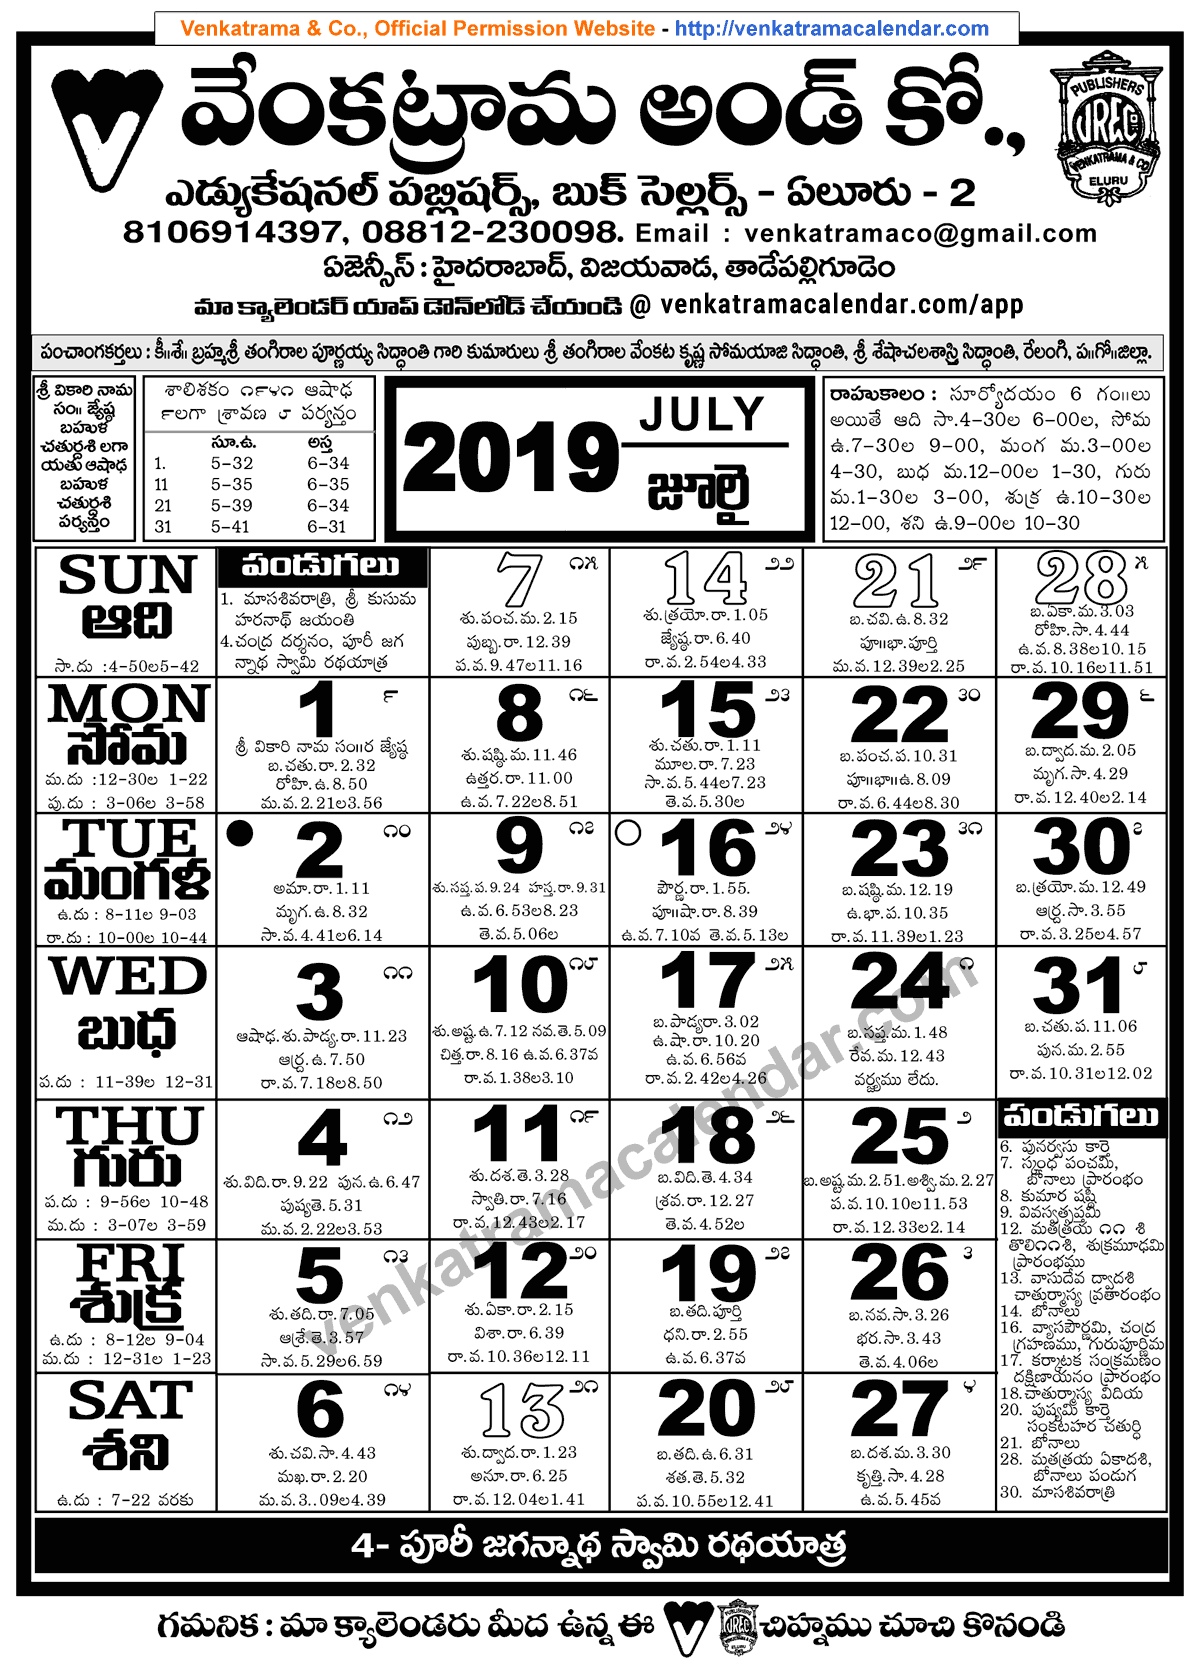 JULY 2019 TELUGU CALENDAR ANDHRA PRADESH - 2019 Marriage